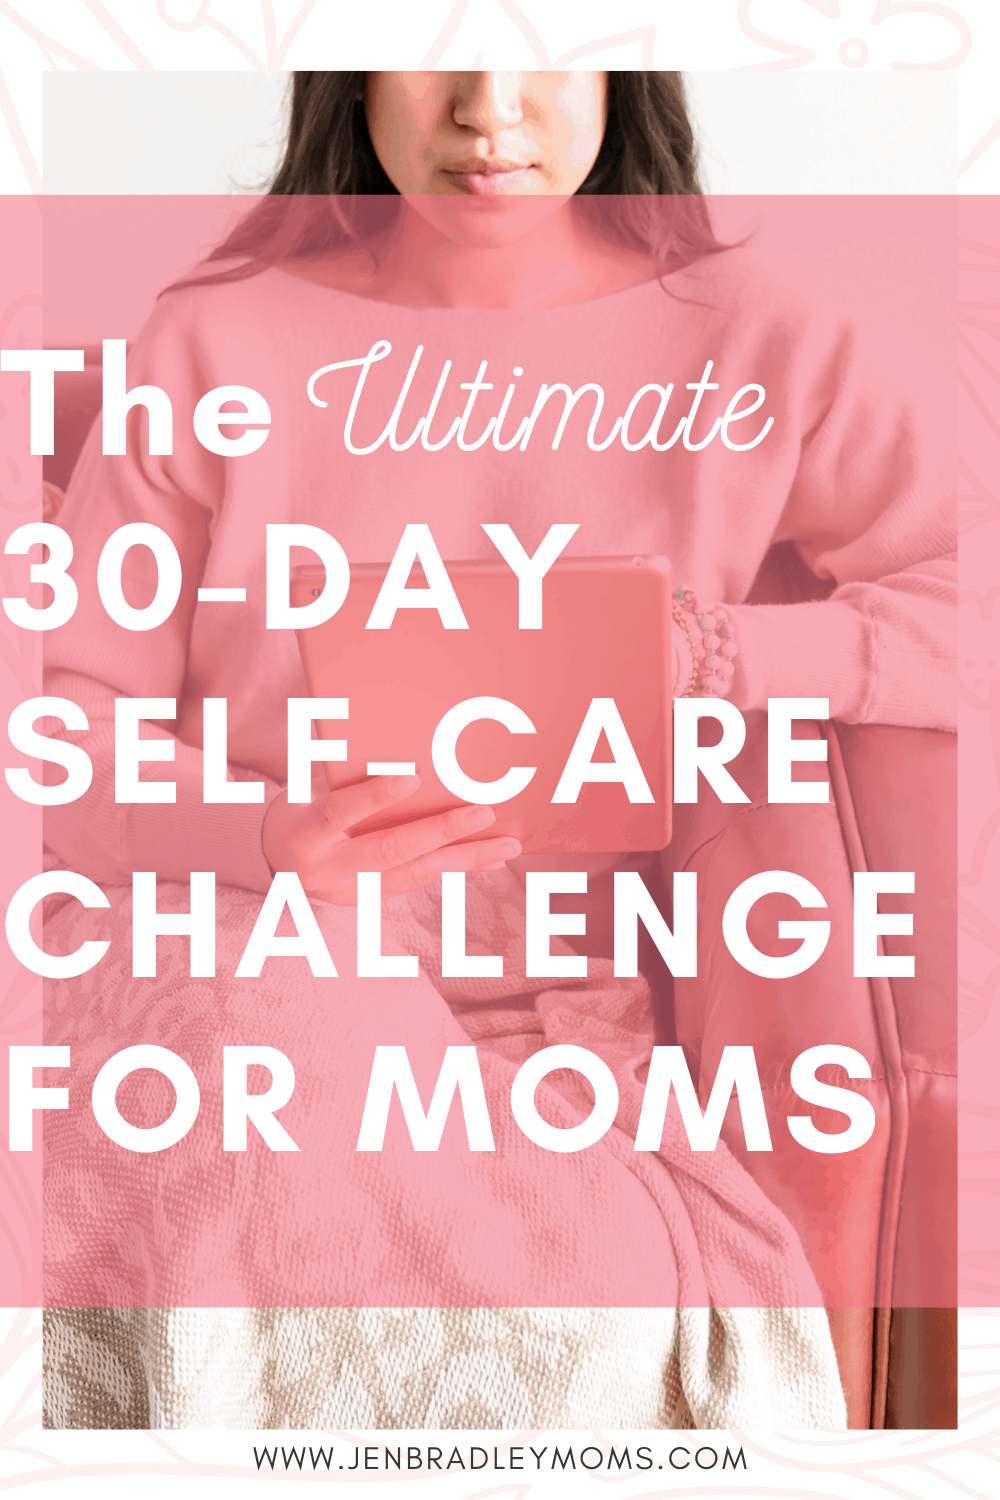 The Ultimate 30-Day Self-Care Challenge for Tired Moms